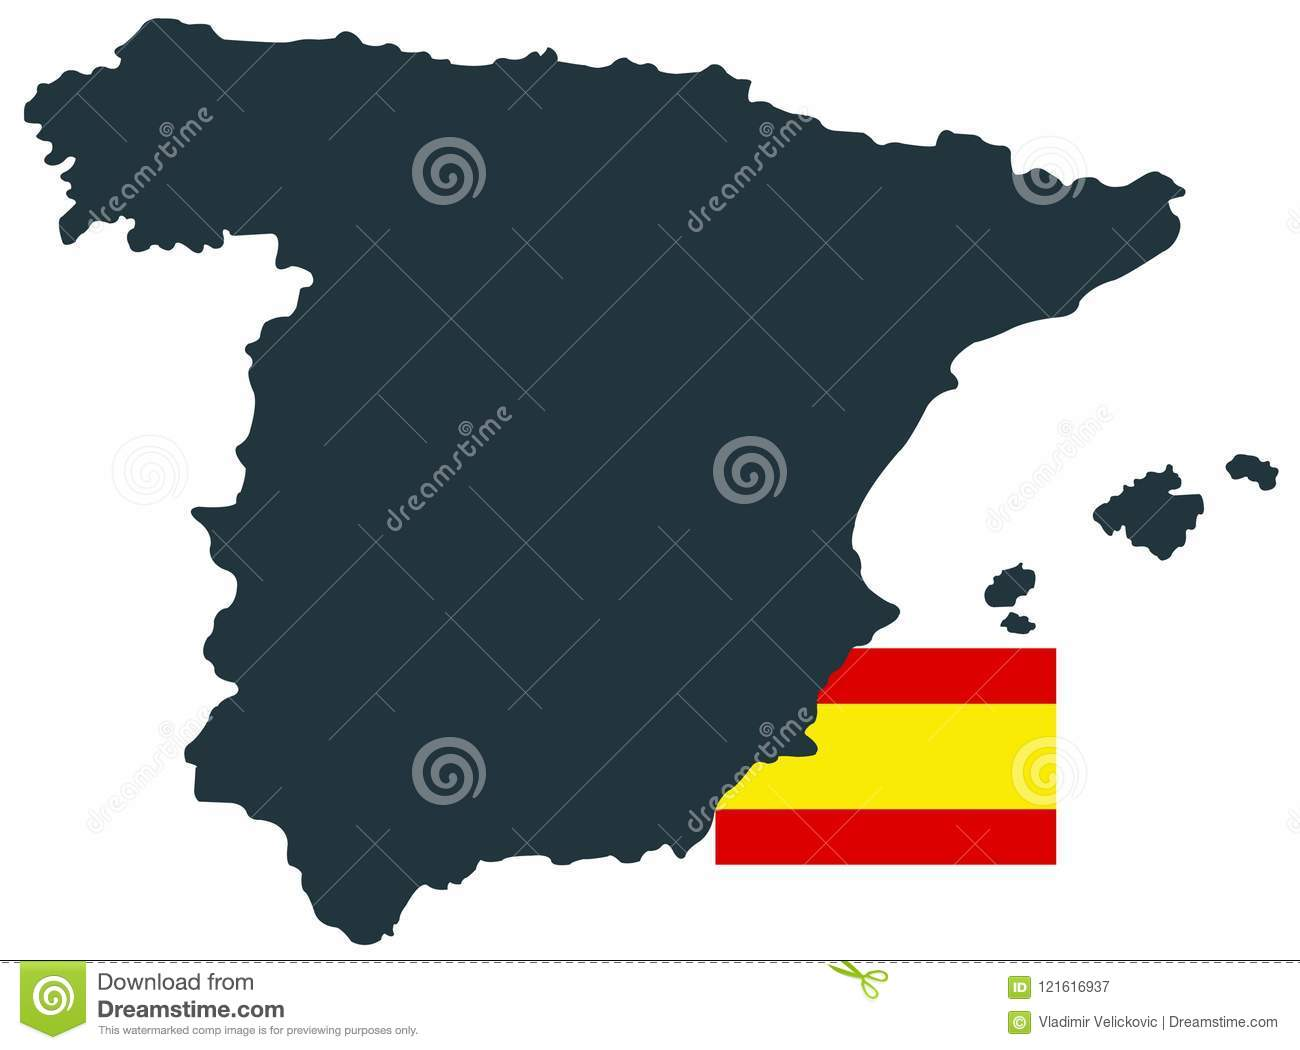 Spain Map And Flag Sovereign State On The Iberian Peninsula In